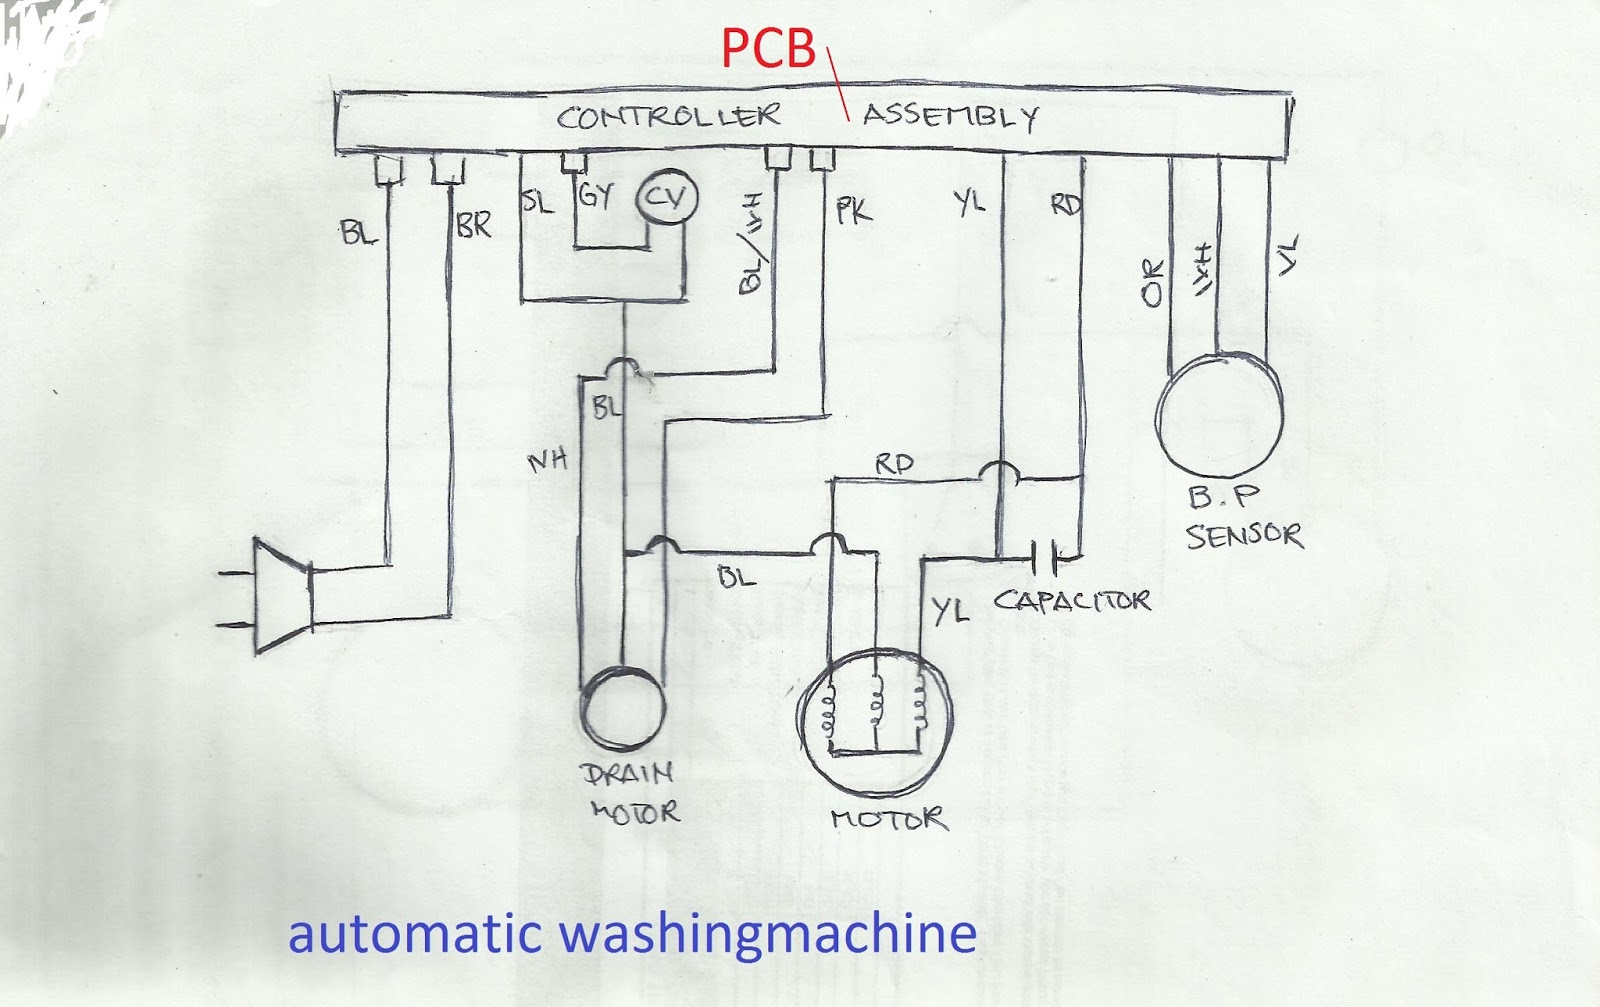 washine refrigeration and air conditioning repair wiring diagram of automatic tubig machine wiring diagram at crackthecode.co